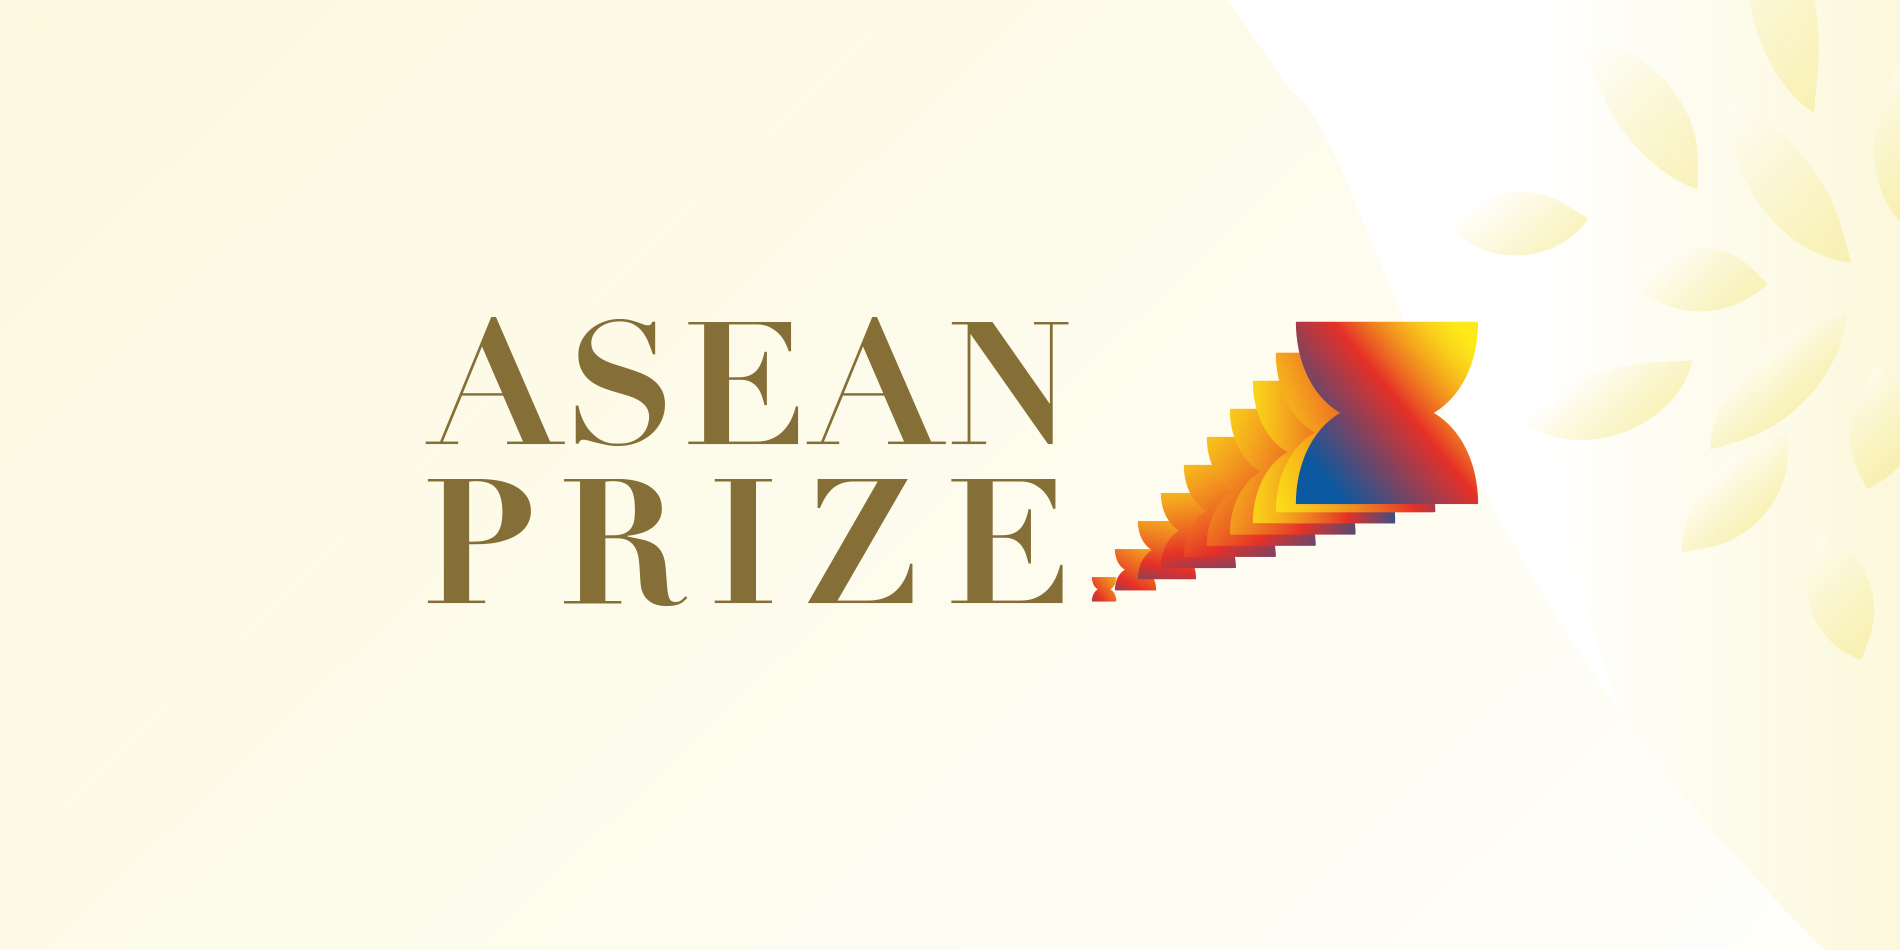 Association of Southeast Asian Nations (ASEAN) Prize 2018 (US$20,000 prize)